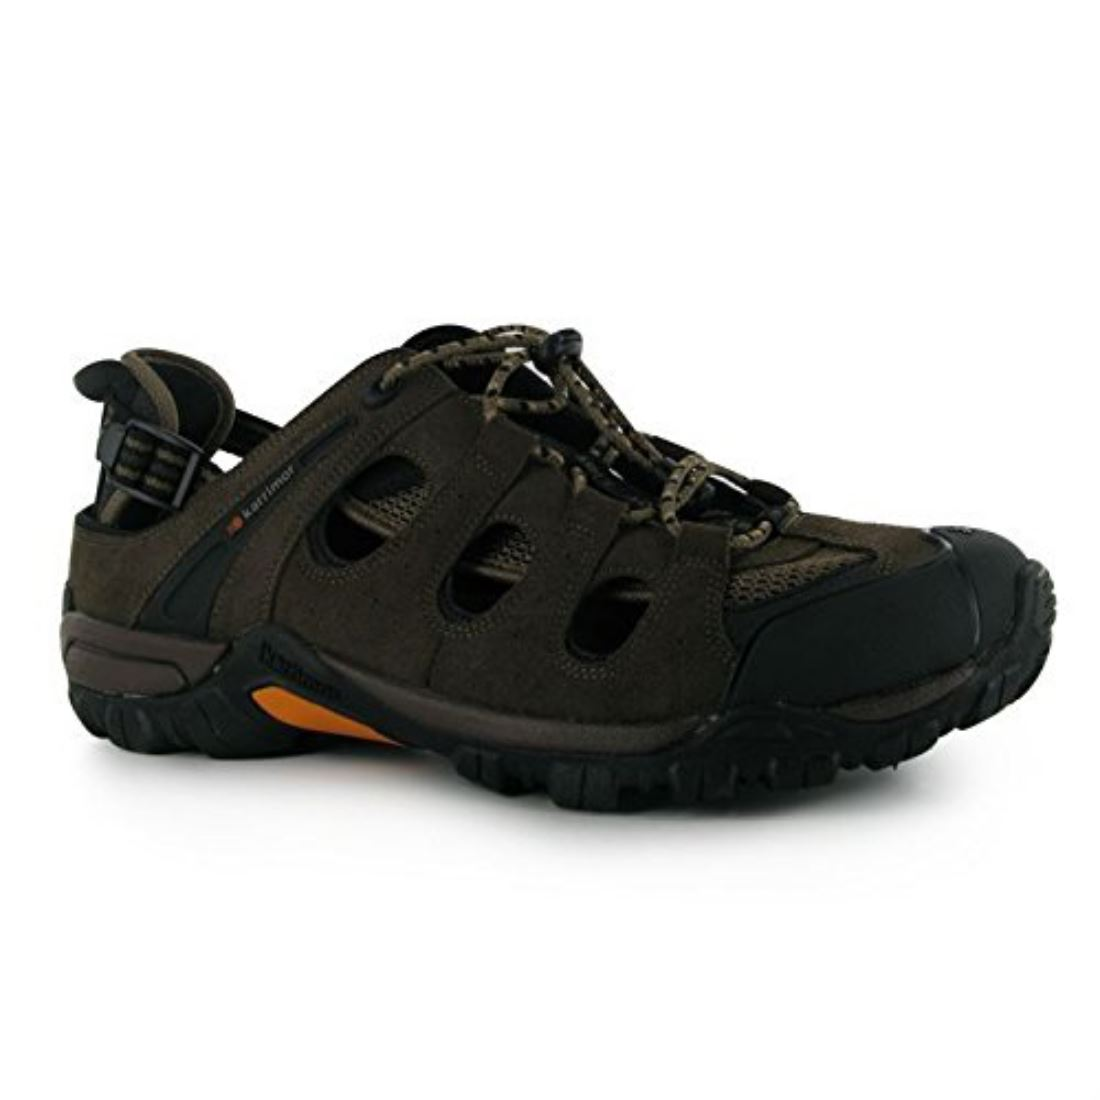 Karrimor Mens Panama Walking Sandals Sports Hiking Beach Shoes Footwear